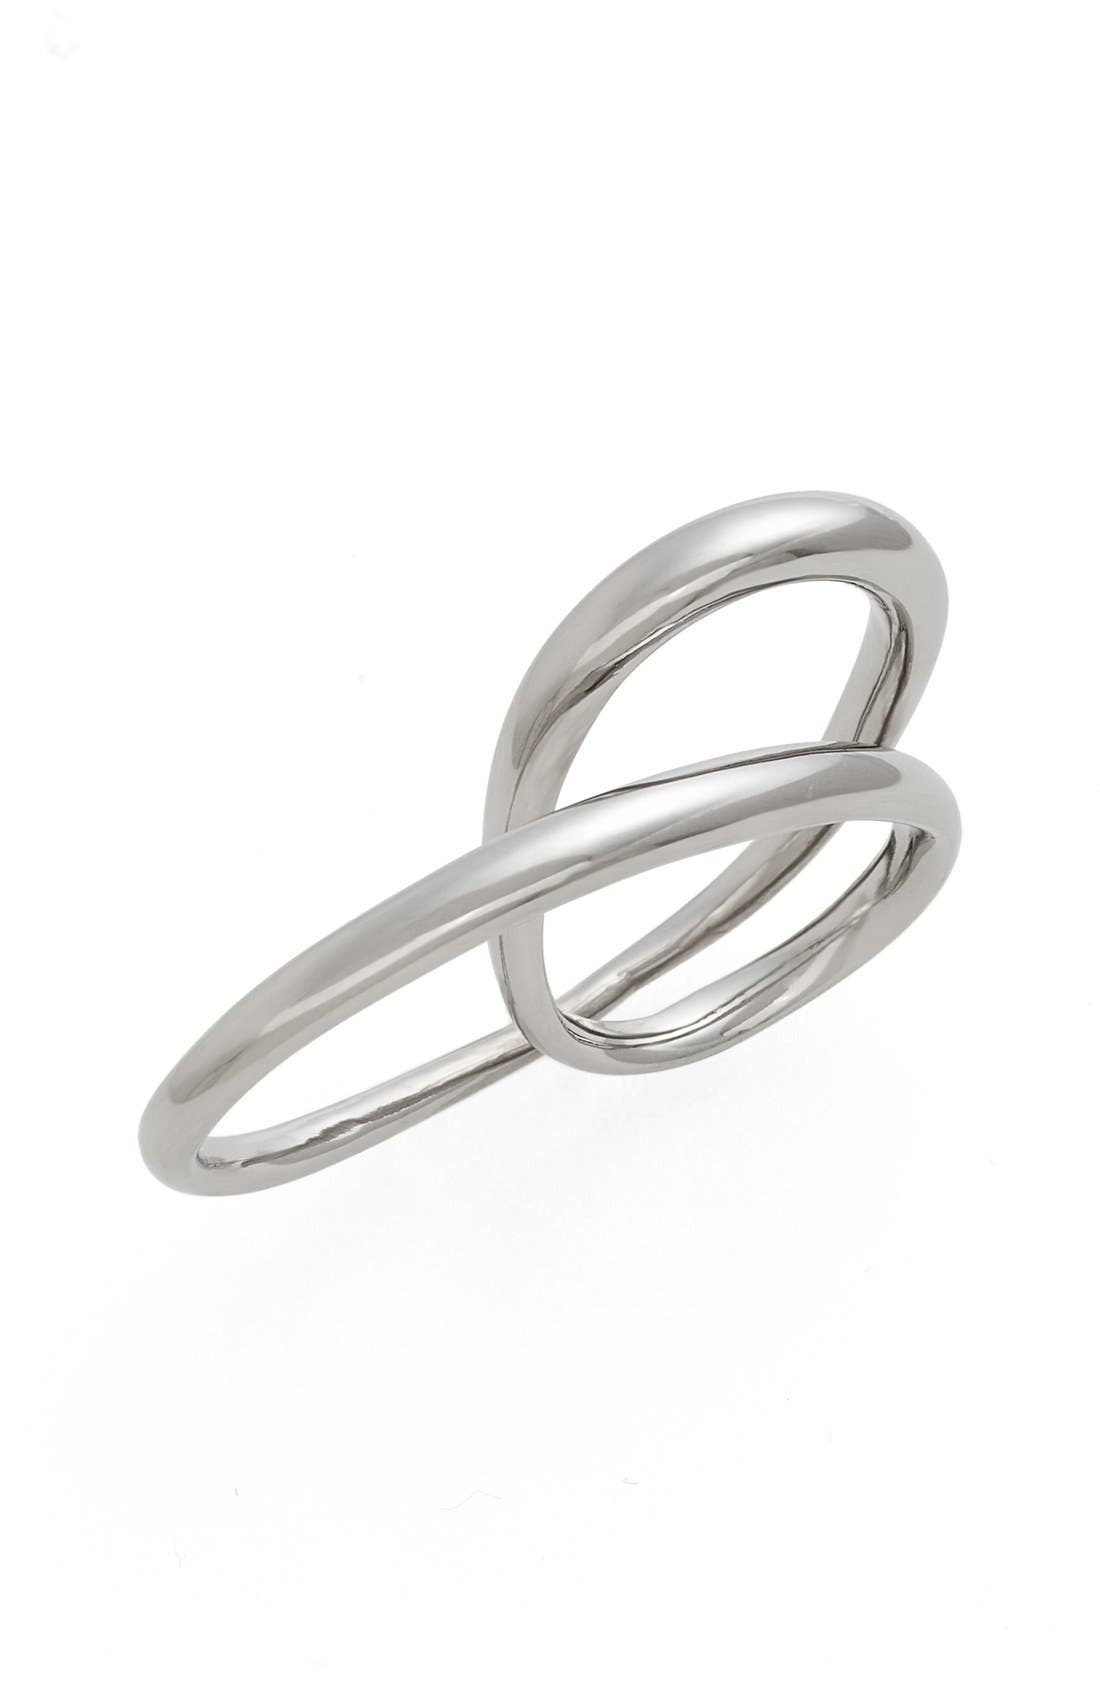 'Heart' Ring,                             Main thumbnail 1, color,                             ARGENT